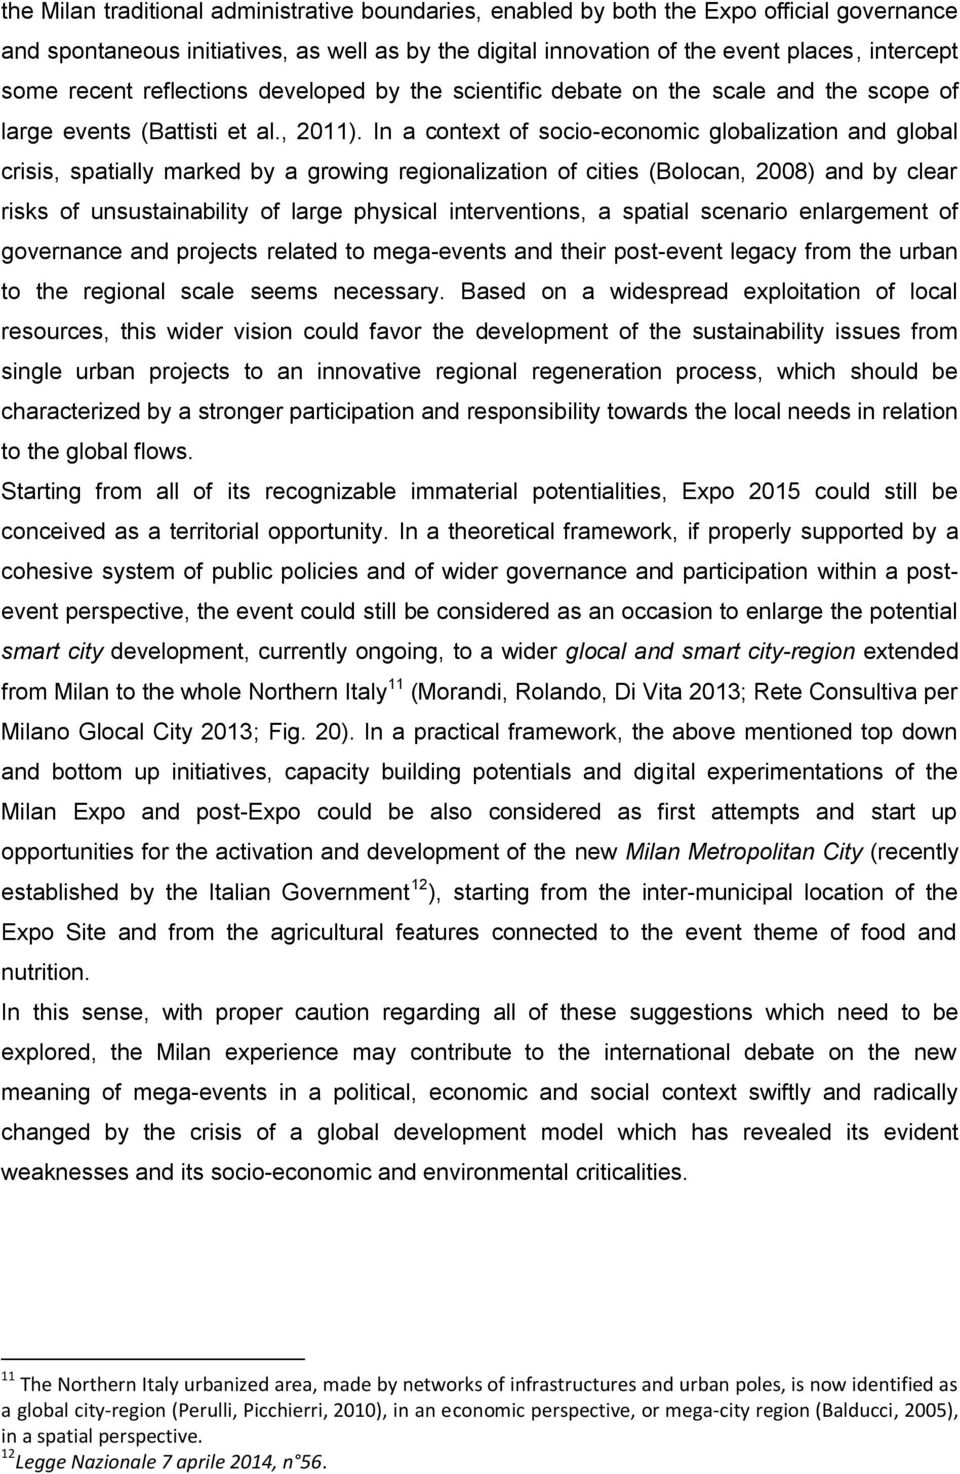 In a context of socio-economic globalization and global crisis, spatially marked by a growing regionalization of cities (Bolocan, 2008) and by clear risks of unsustainability of large physical